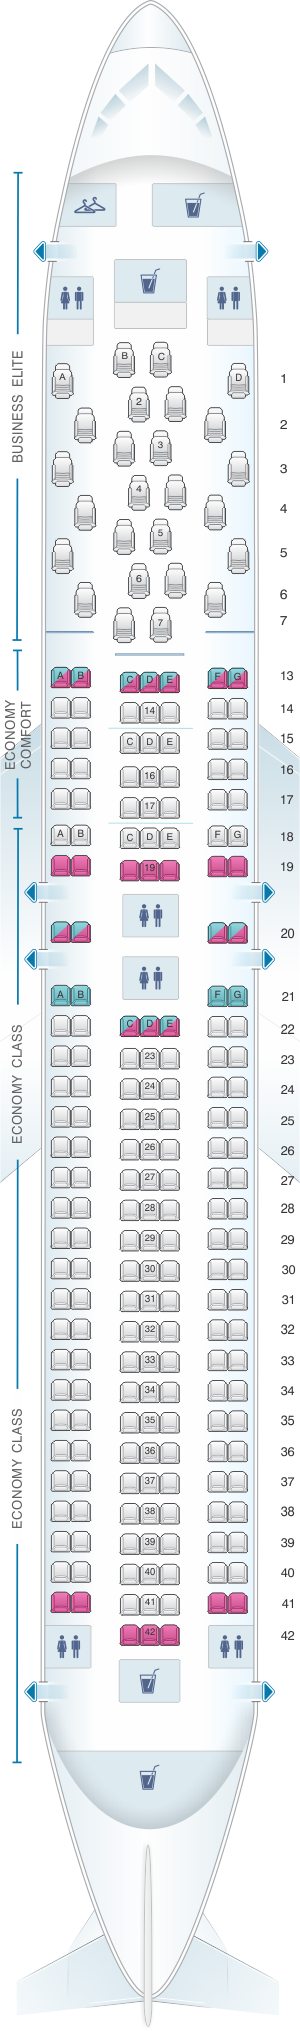 Seat map for Delta Air Lines Boeing B767 300ER (76Z V1)